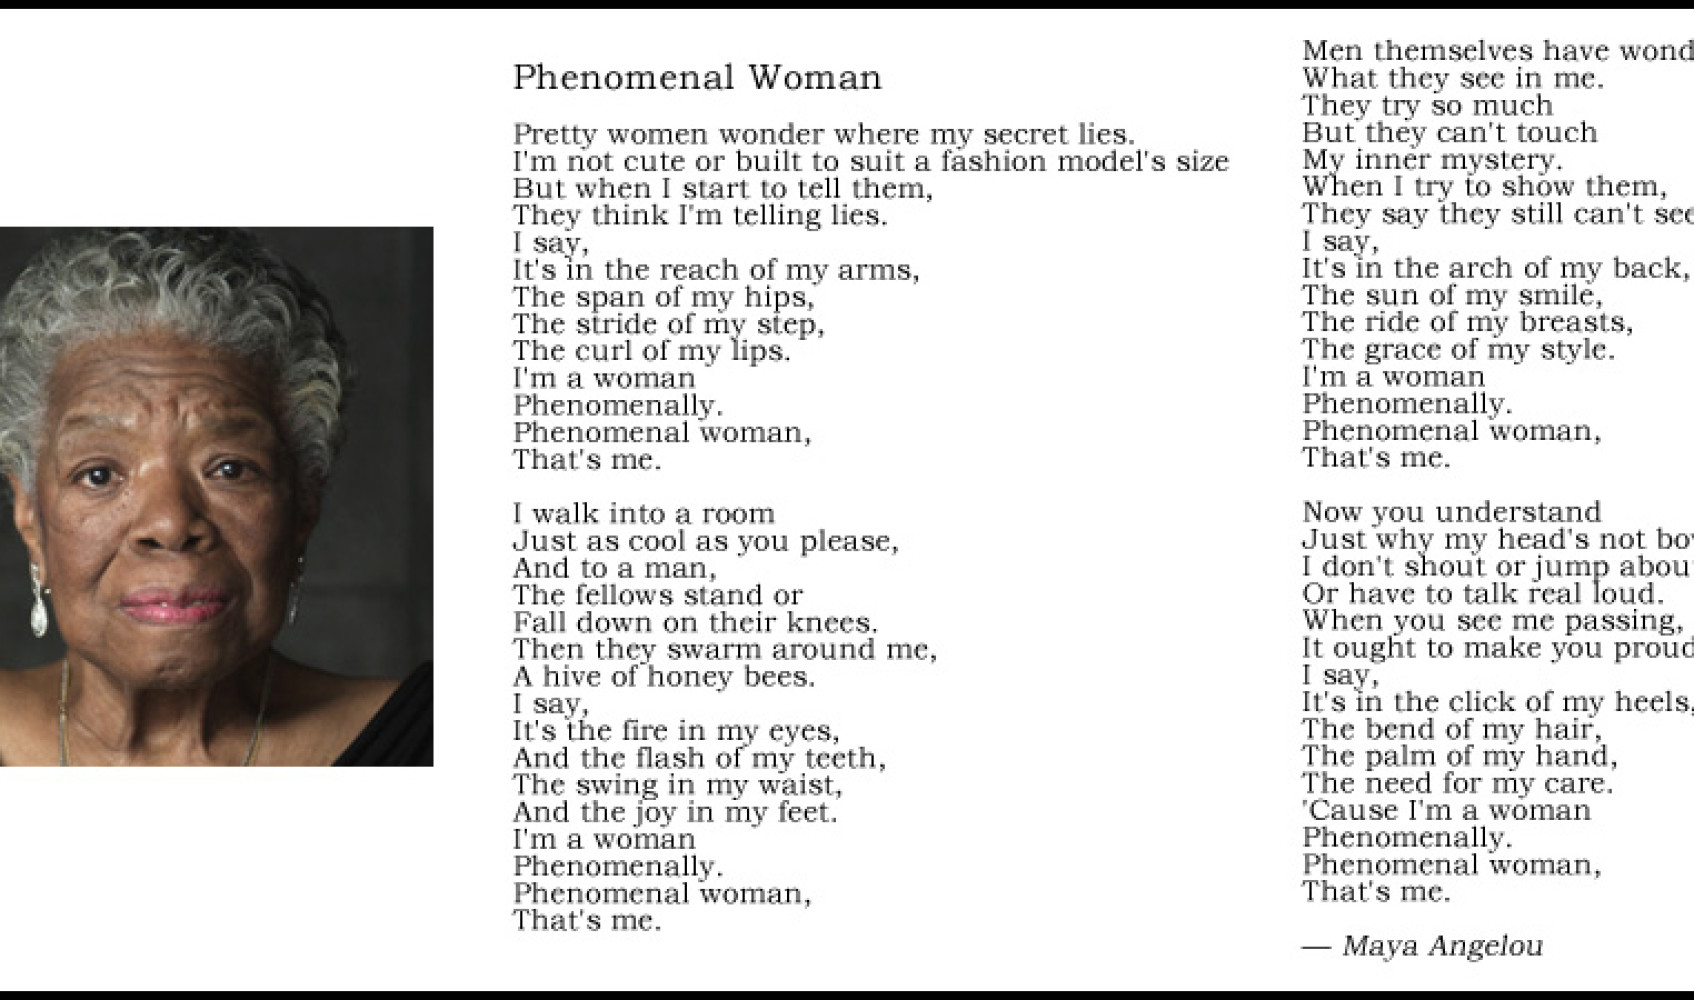 phenomenal woman 2 essay Phenomenal woman essay submitted by alaskandra words: 512 phenomenal woman in this poem, maya angelou is the narrator who is referring to herself she explains that she may not be a model and act perfect, but accepts and loves who she is.